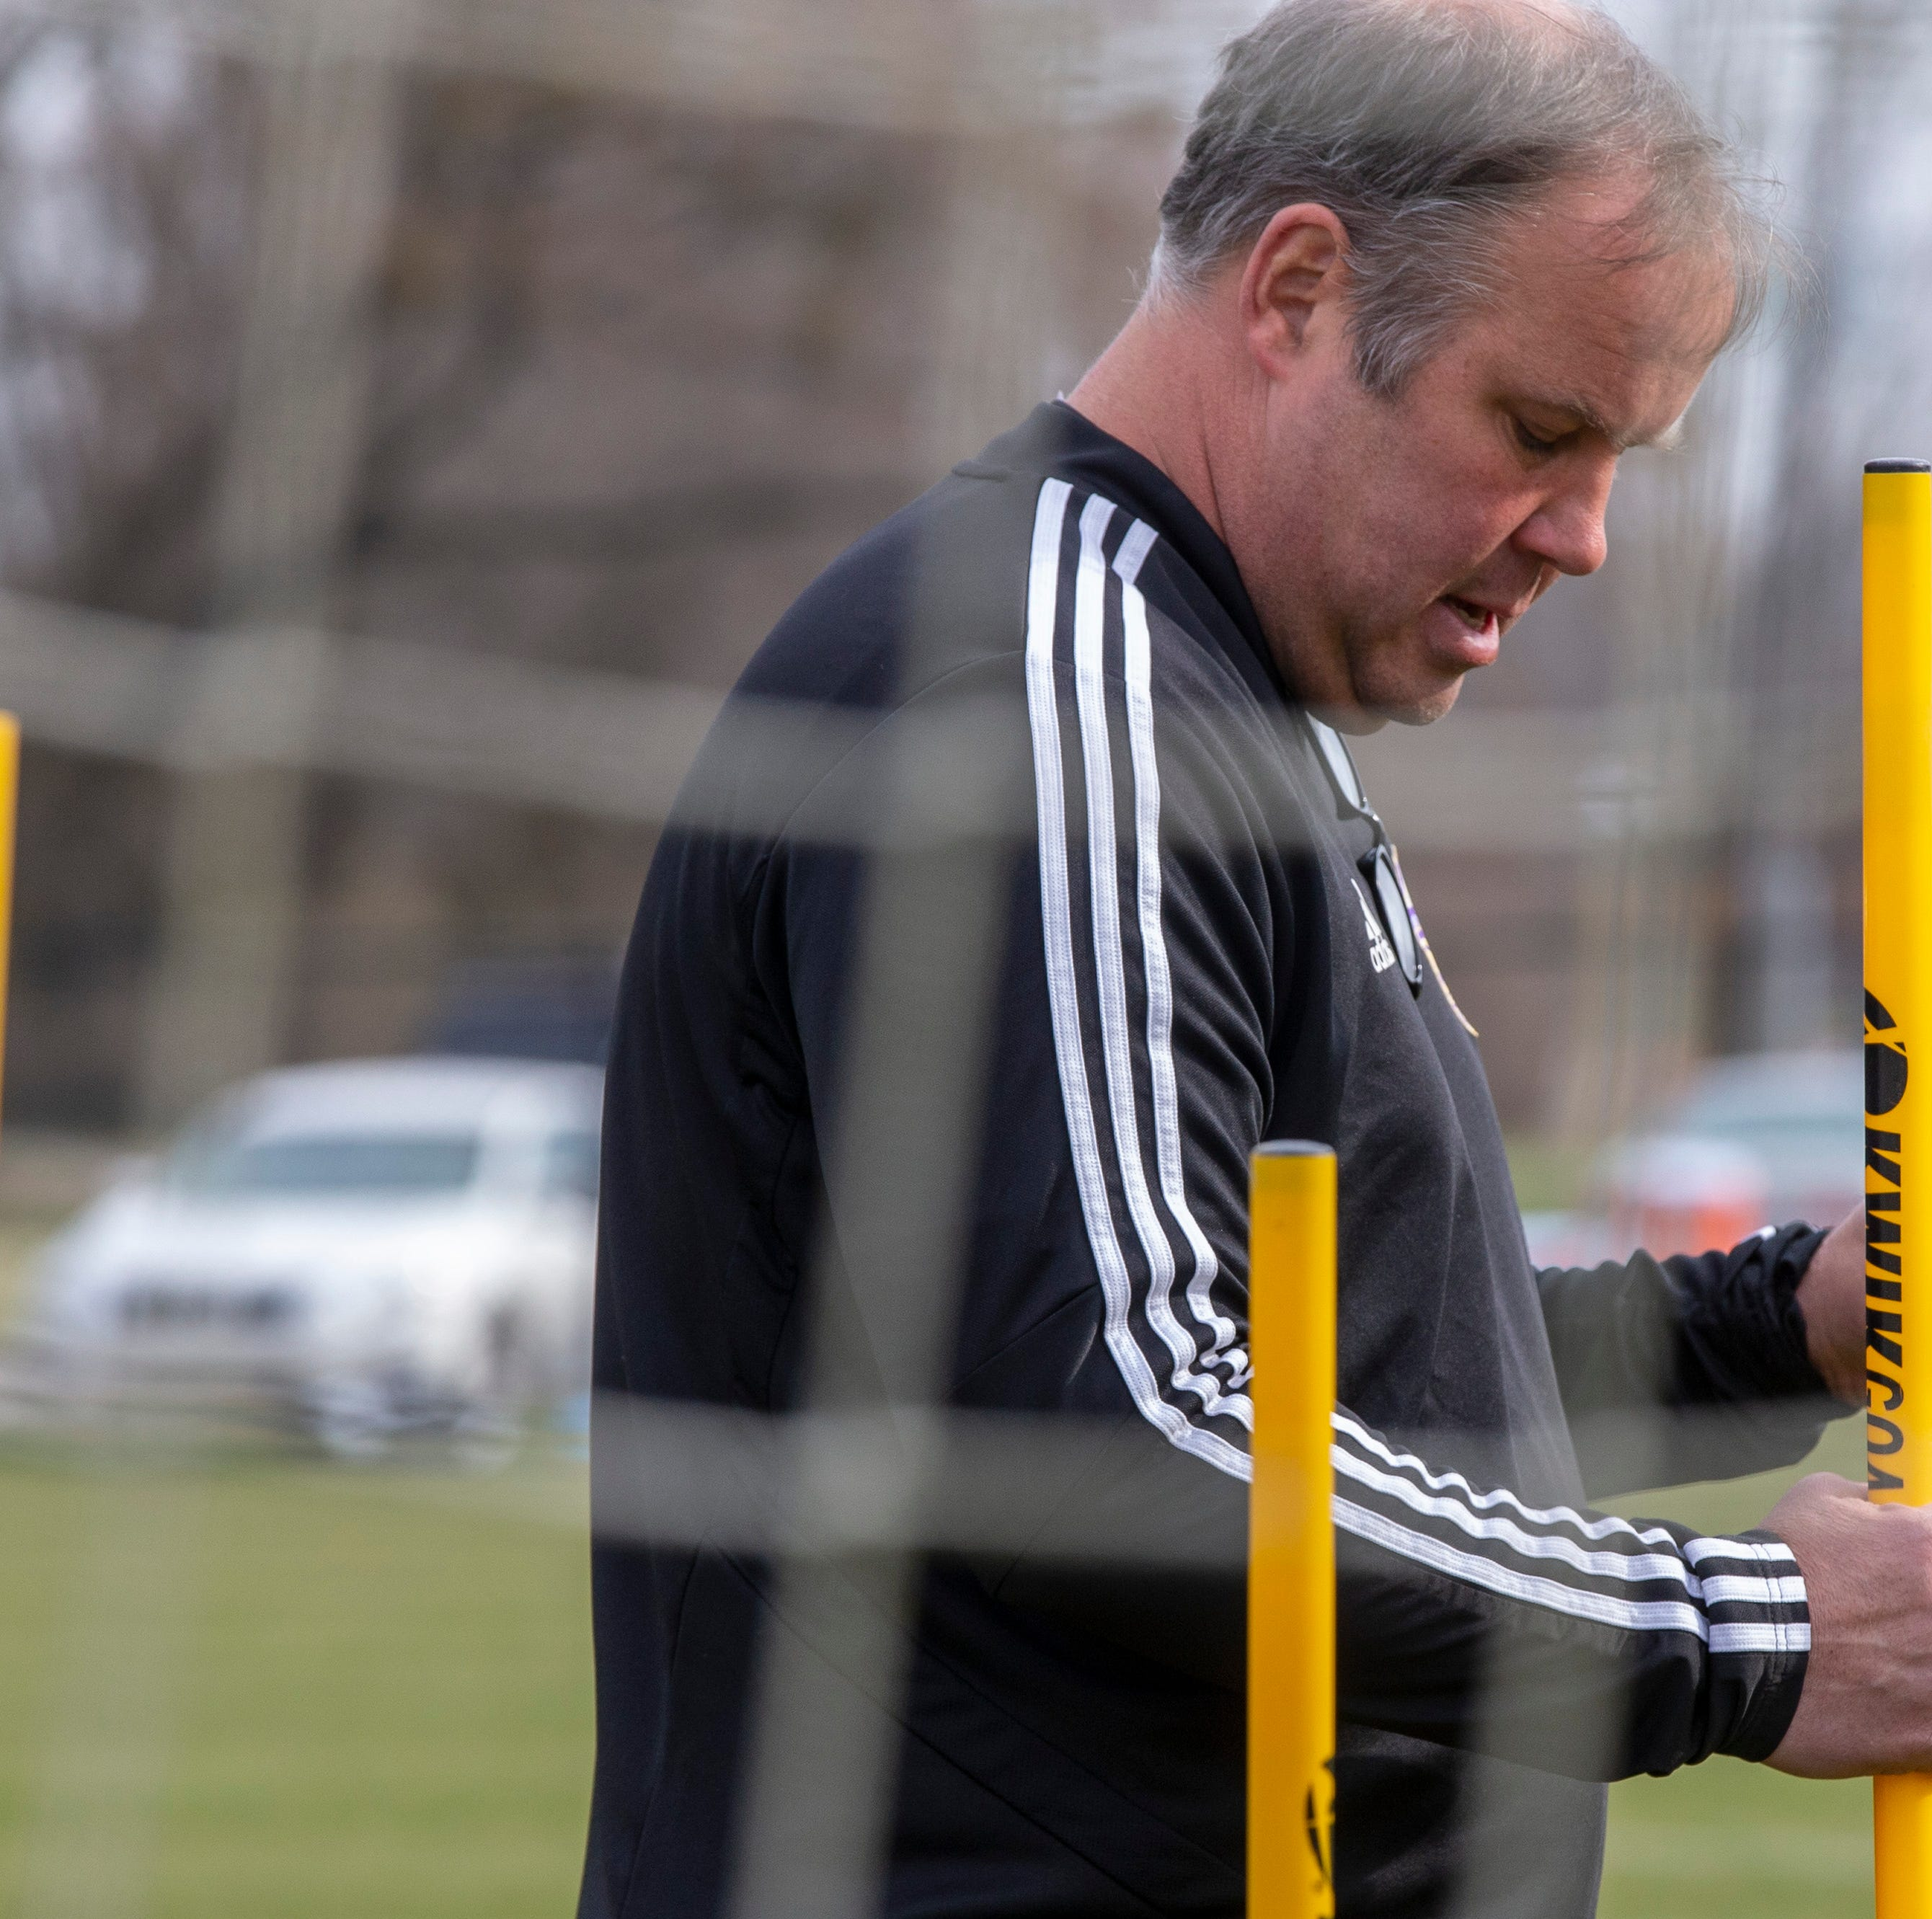 From suit and tie to sweatpants and cleats: A LouCity coach comes full circle